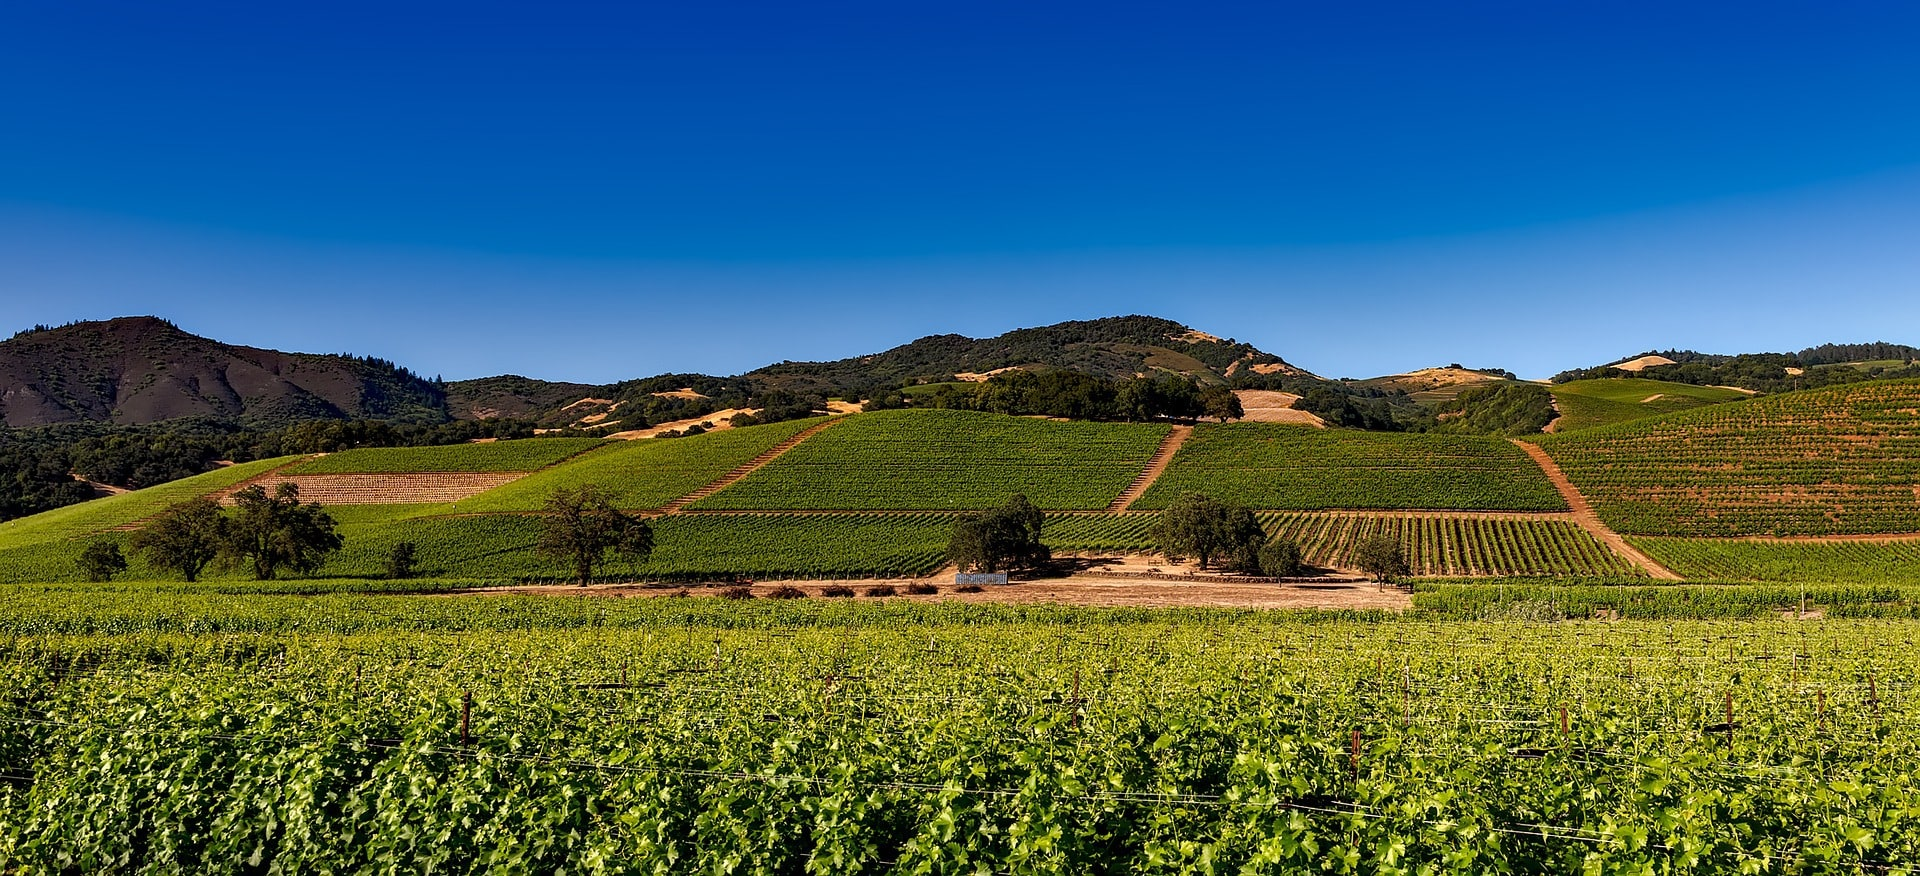 Things to do in Napa Valley - go wine tasting